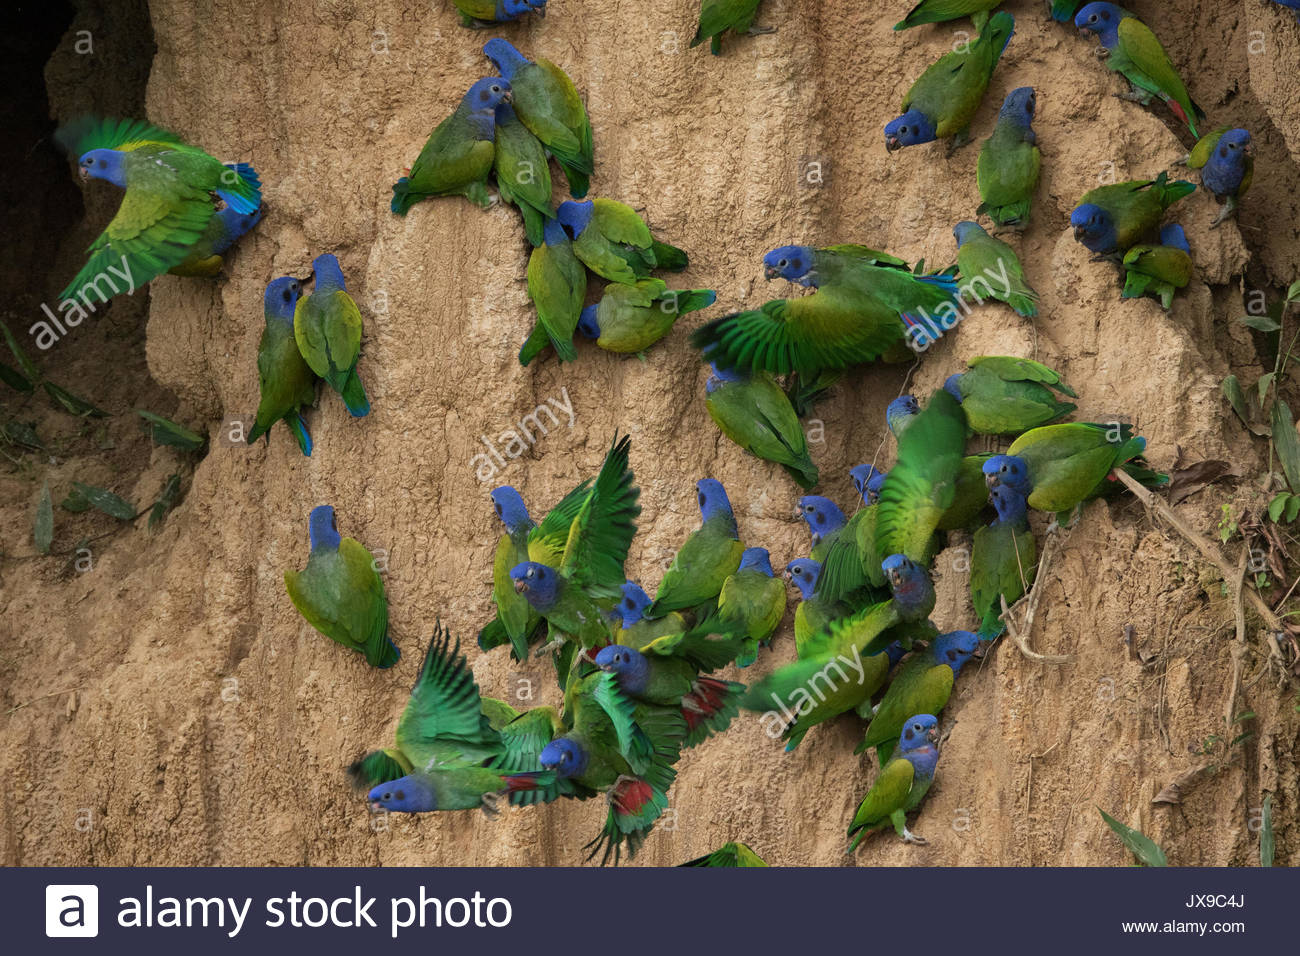 Blue headed parrots on a cliff in Manu National Park. - Stock Image